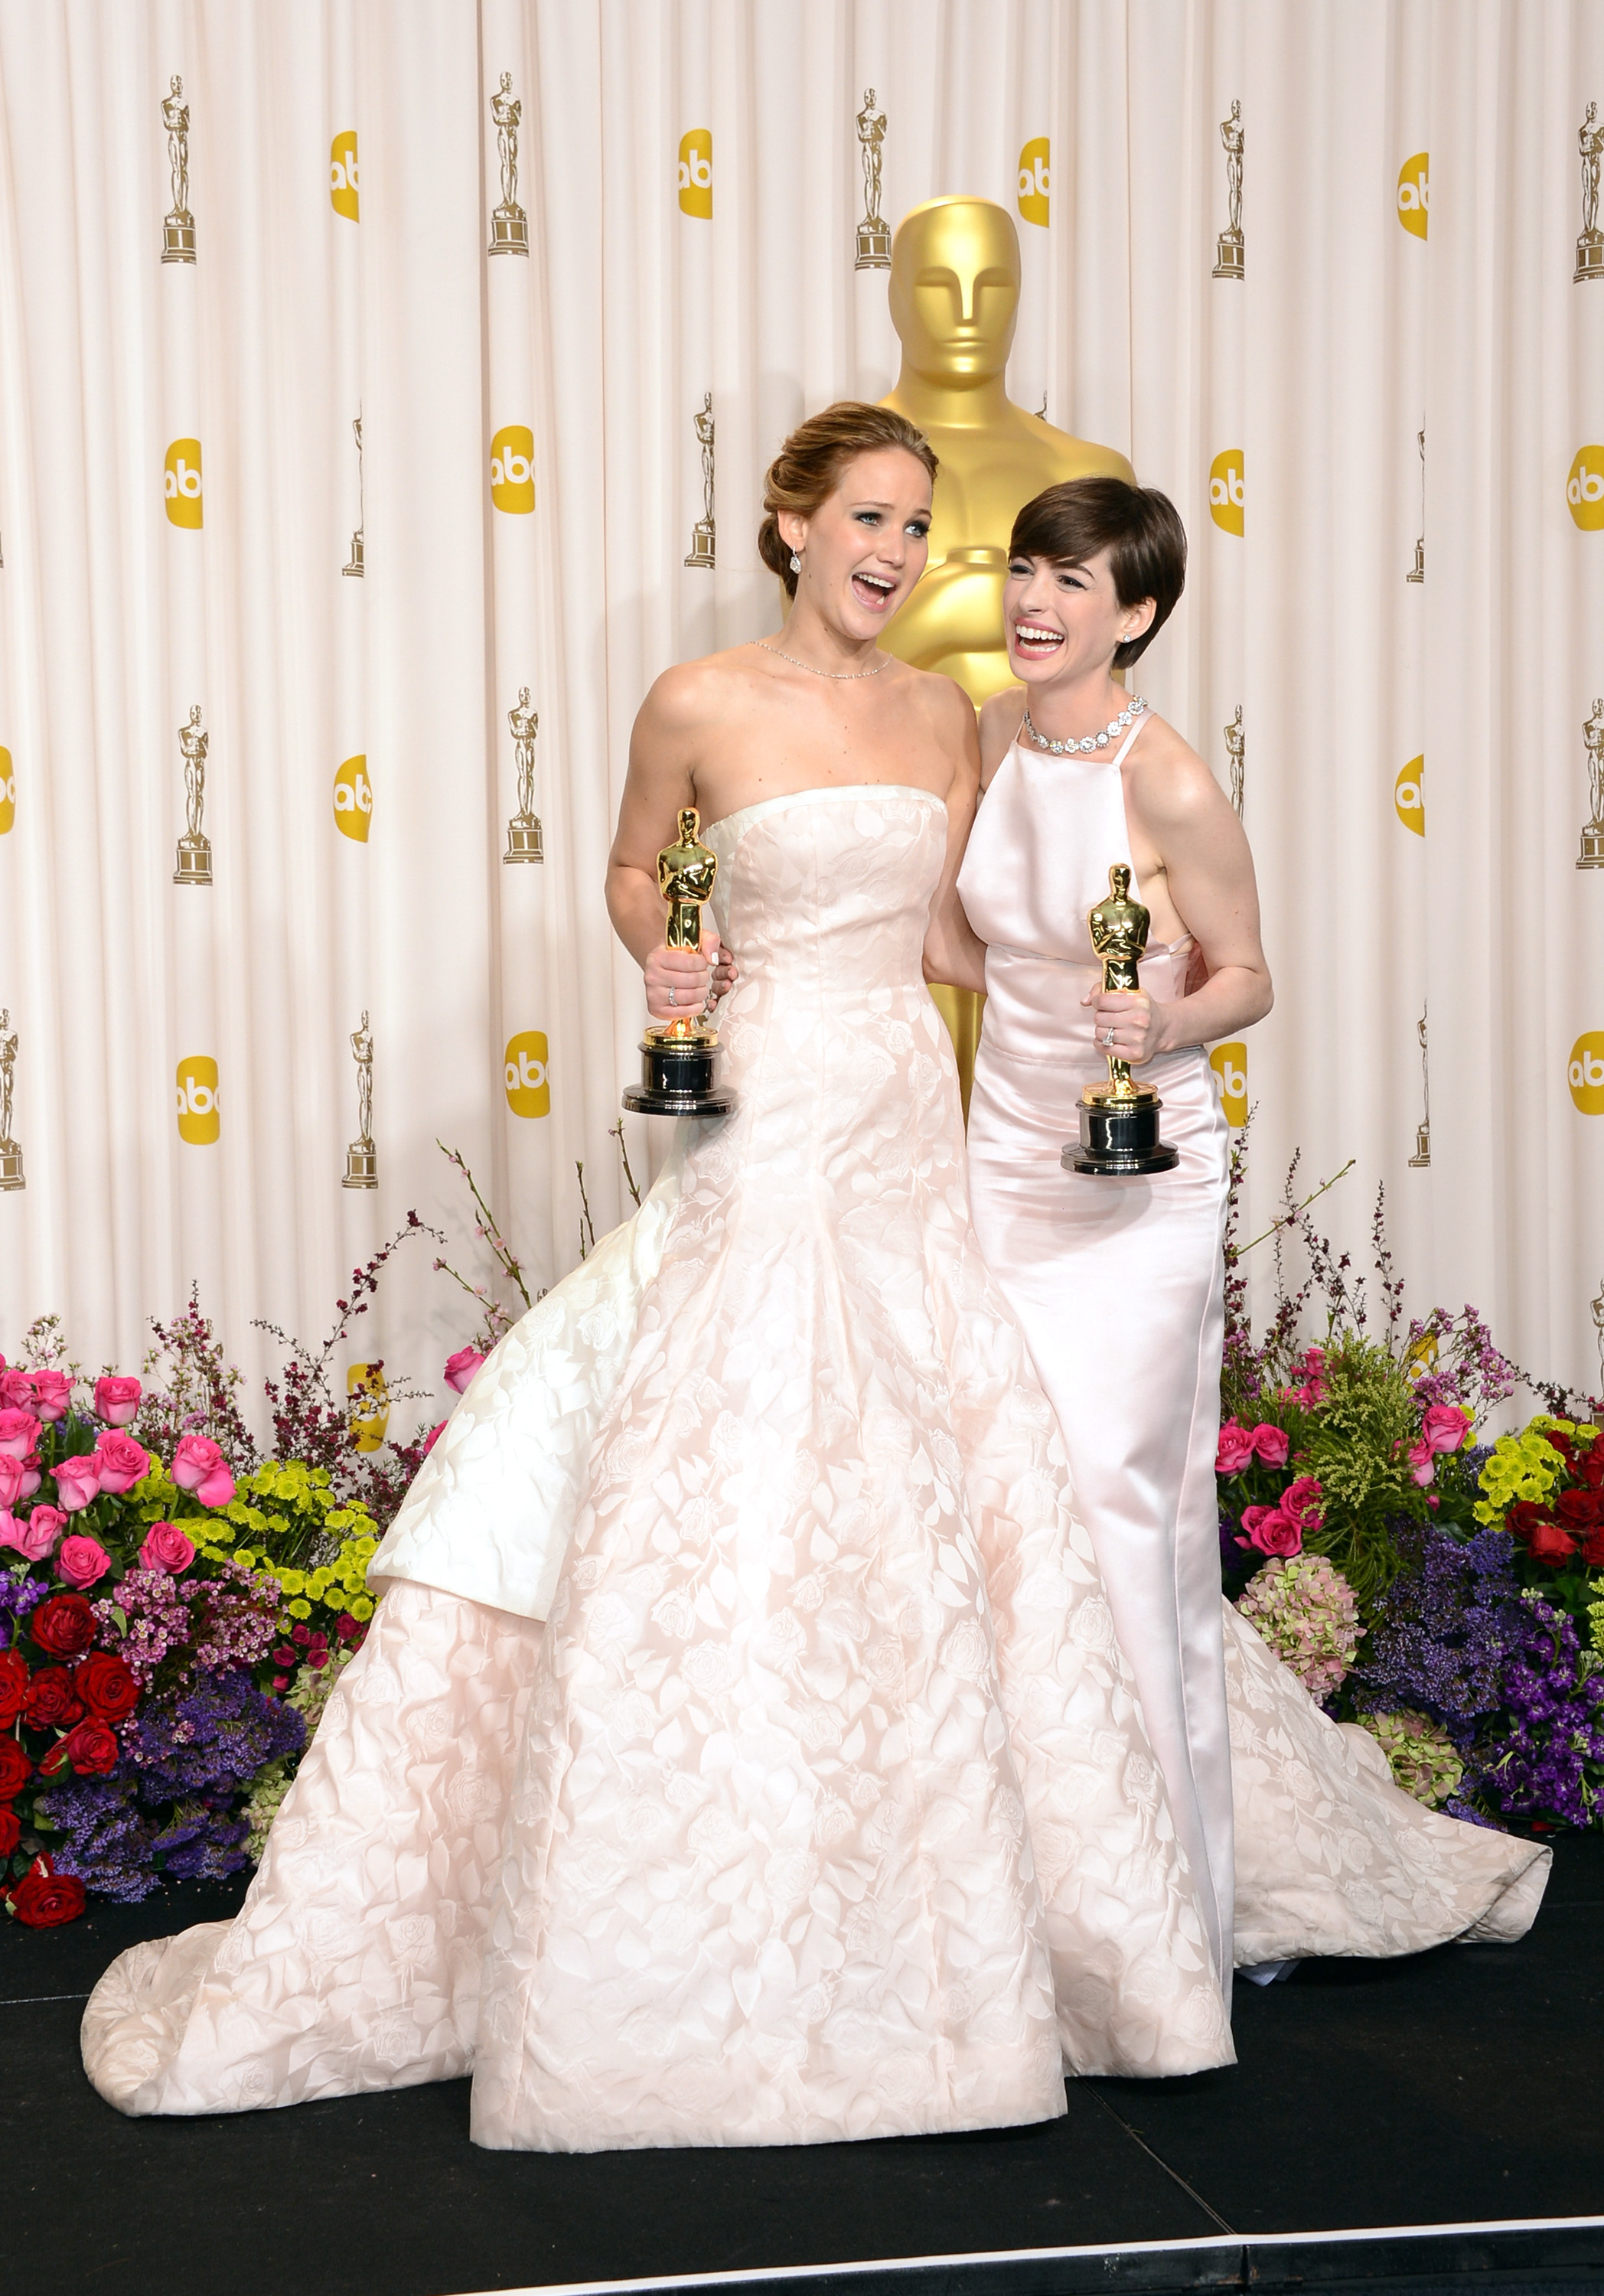 Jennifer Lawrence and Anne Hathaway backstage at the Oscars 2013.